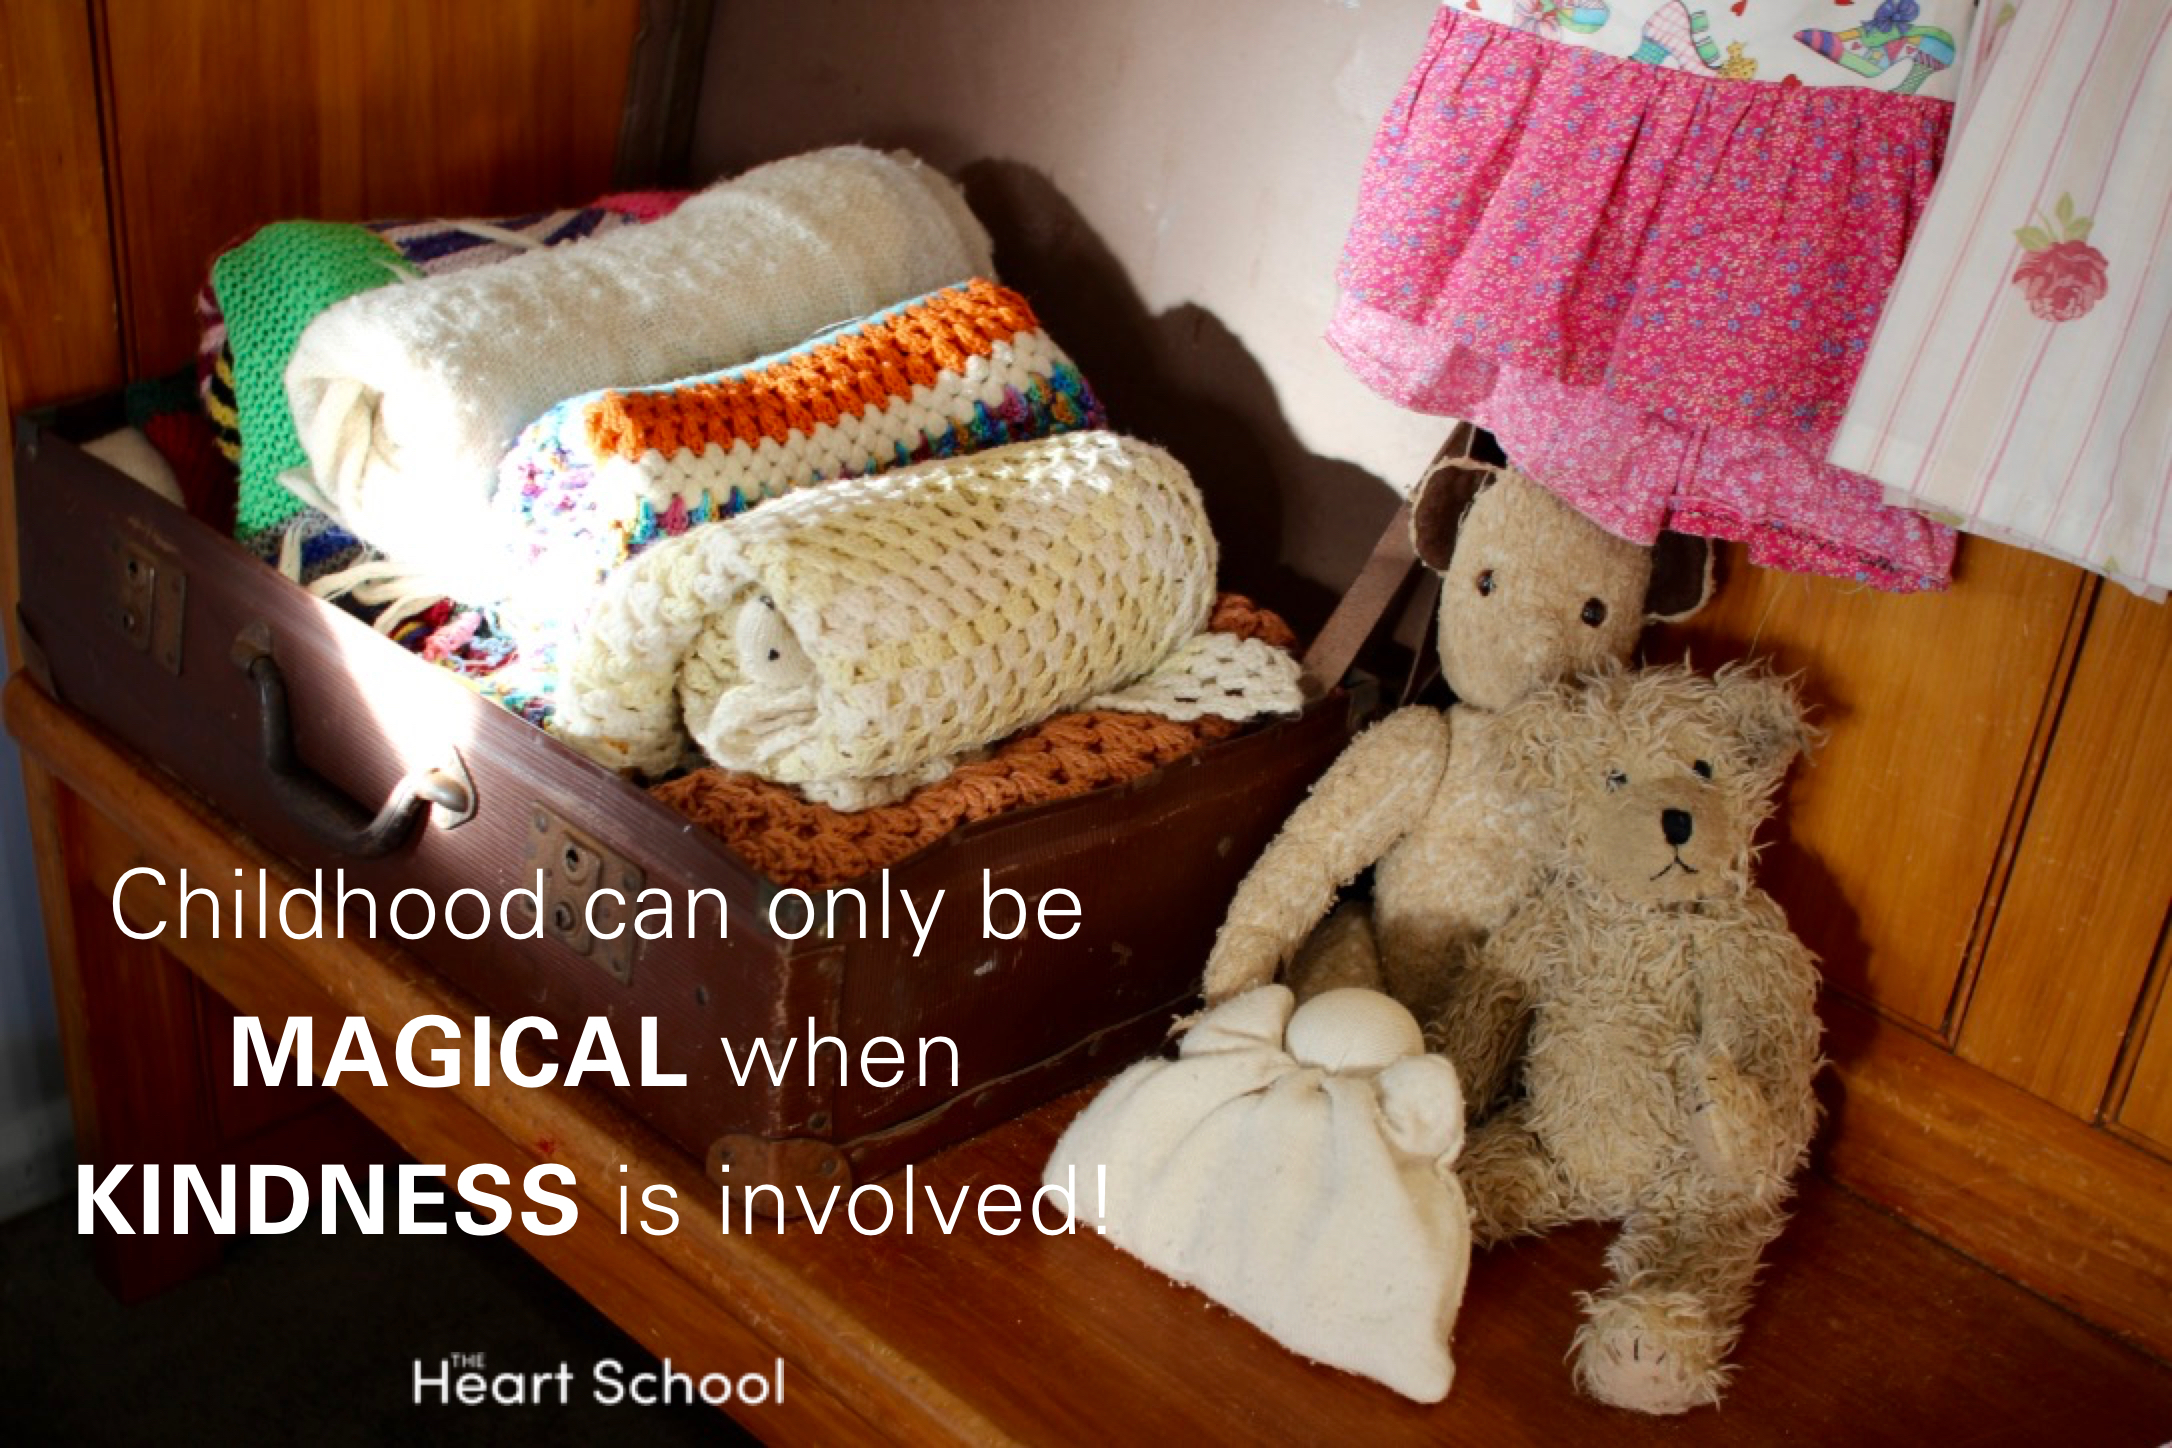 Kindness is critical when working with children. They may forget what they did but they will never forget 'how' they were treated. Kindness is a direct 'deposit' into the child's 'heart account'. Kindness honours the spirit of the child.